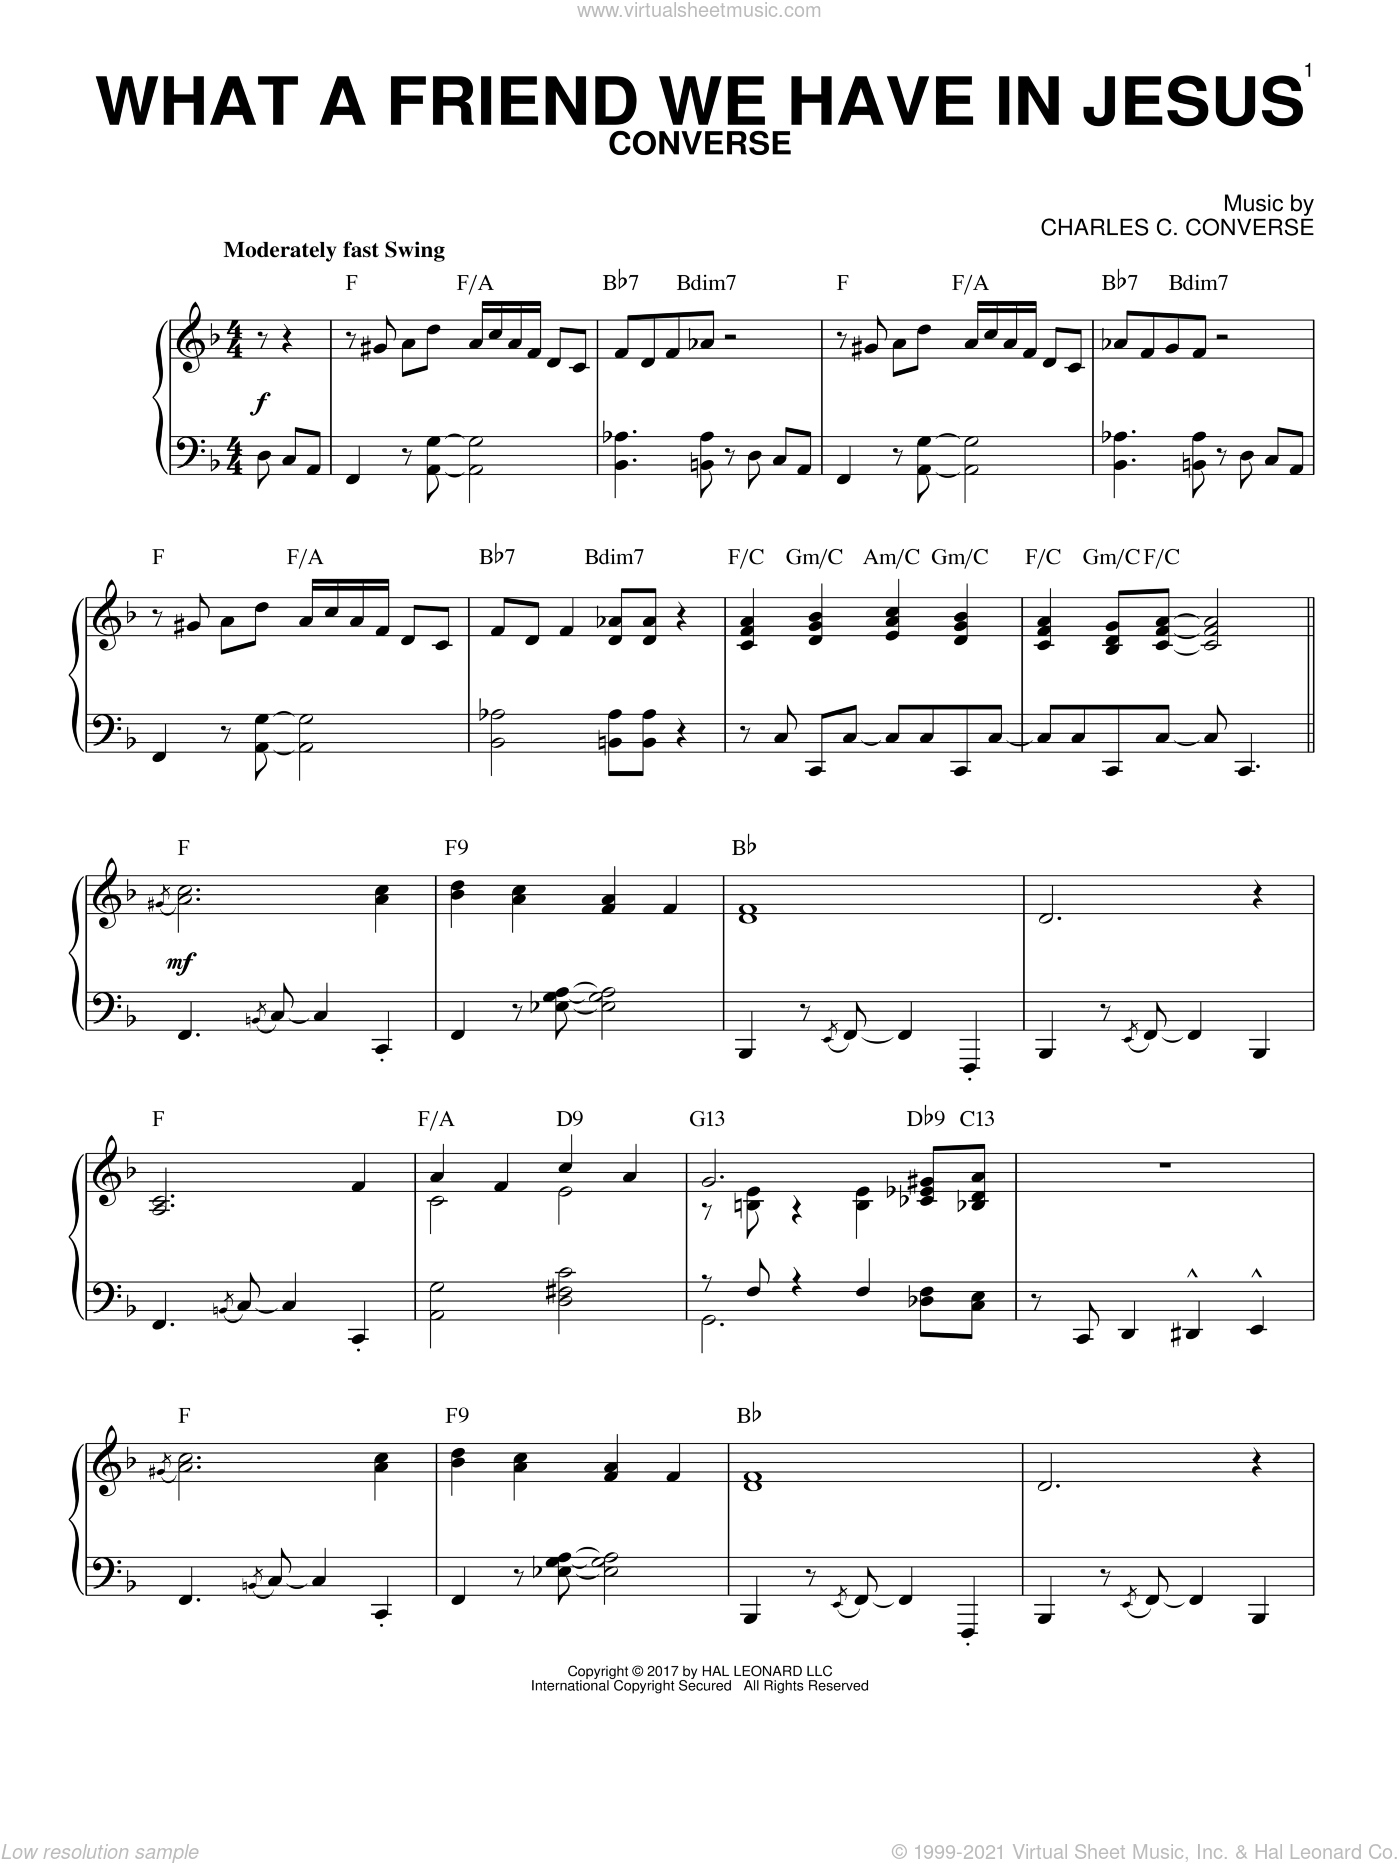 What A Friend We Have In Jesus [Jazz version] sheet music for piano solo by Joseph M. Scriven and Charles C. Converse, intermediate skill level